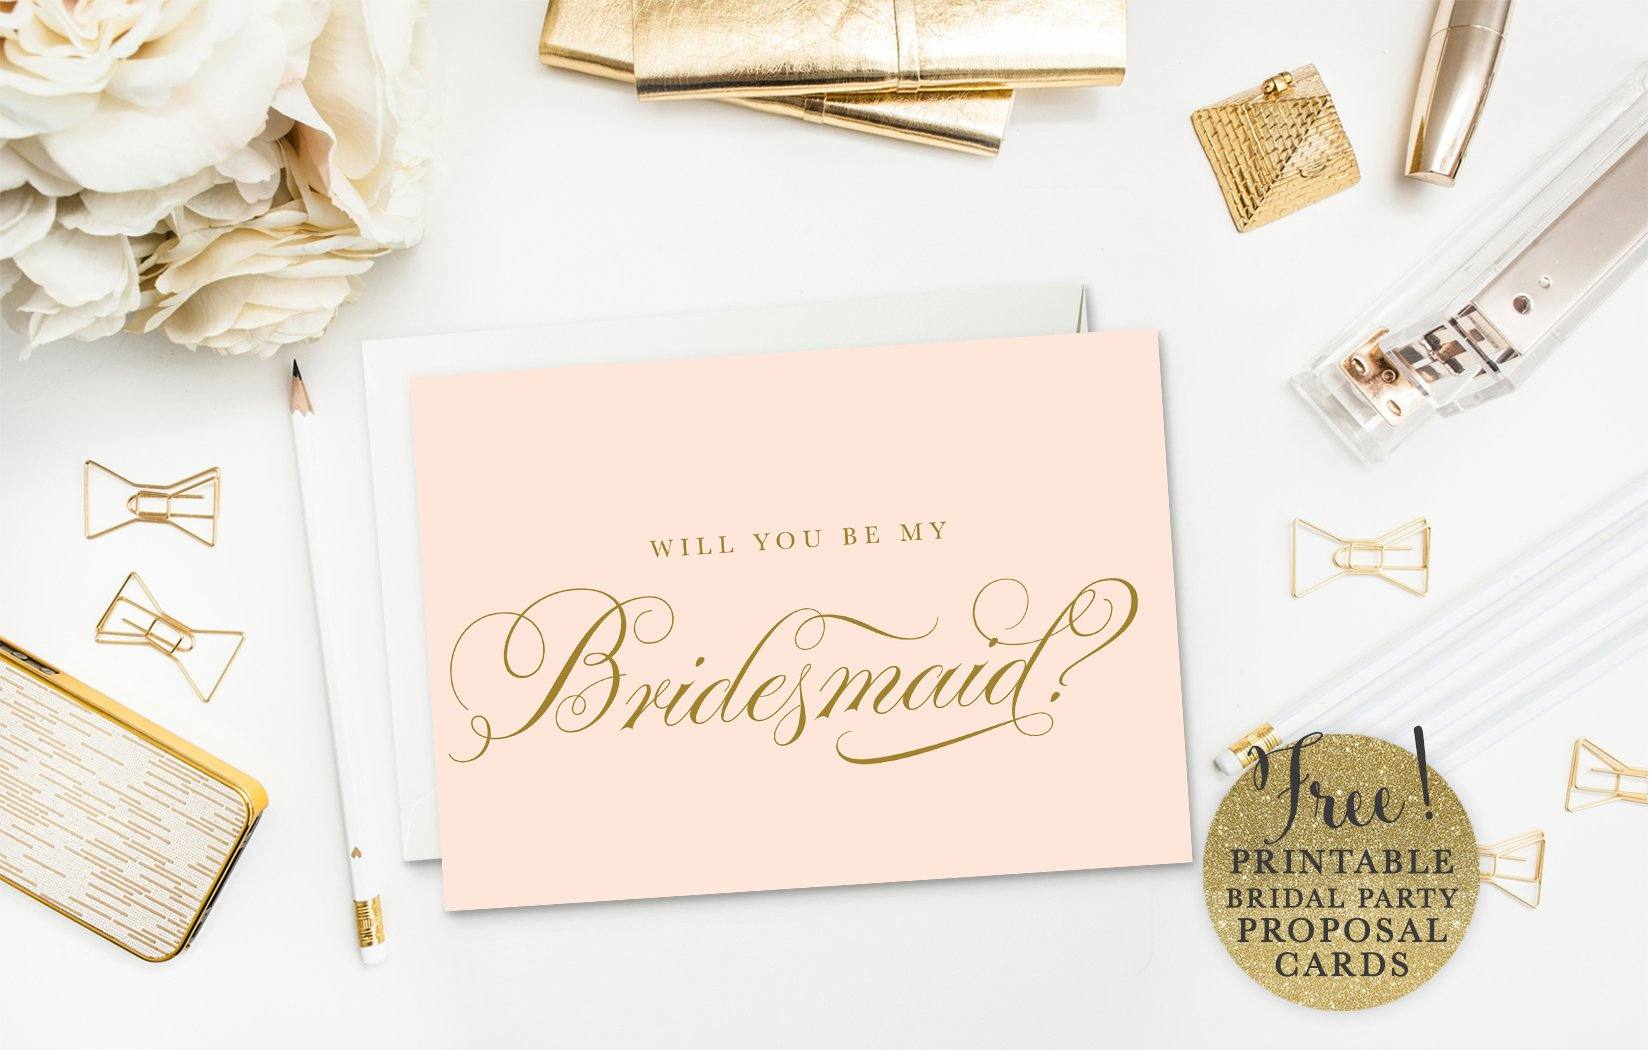 Will You Be My Bridesmaid Letter Template - 19 Free Printable Will You Be My Bridesmaid Cards